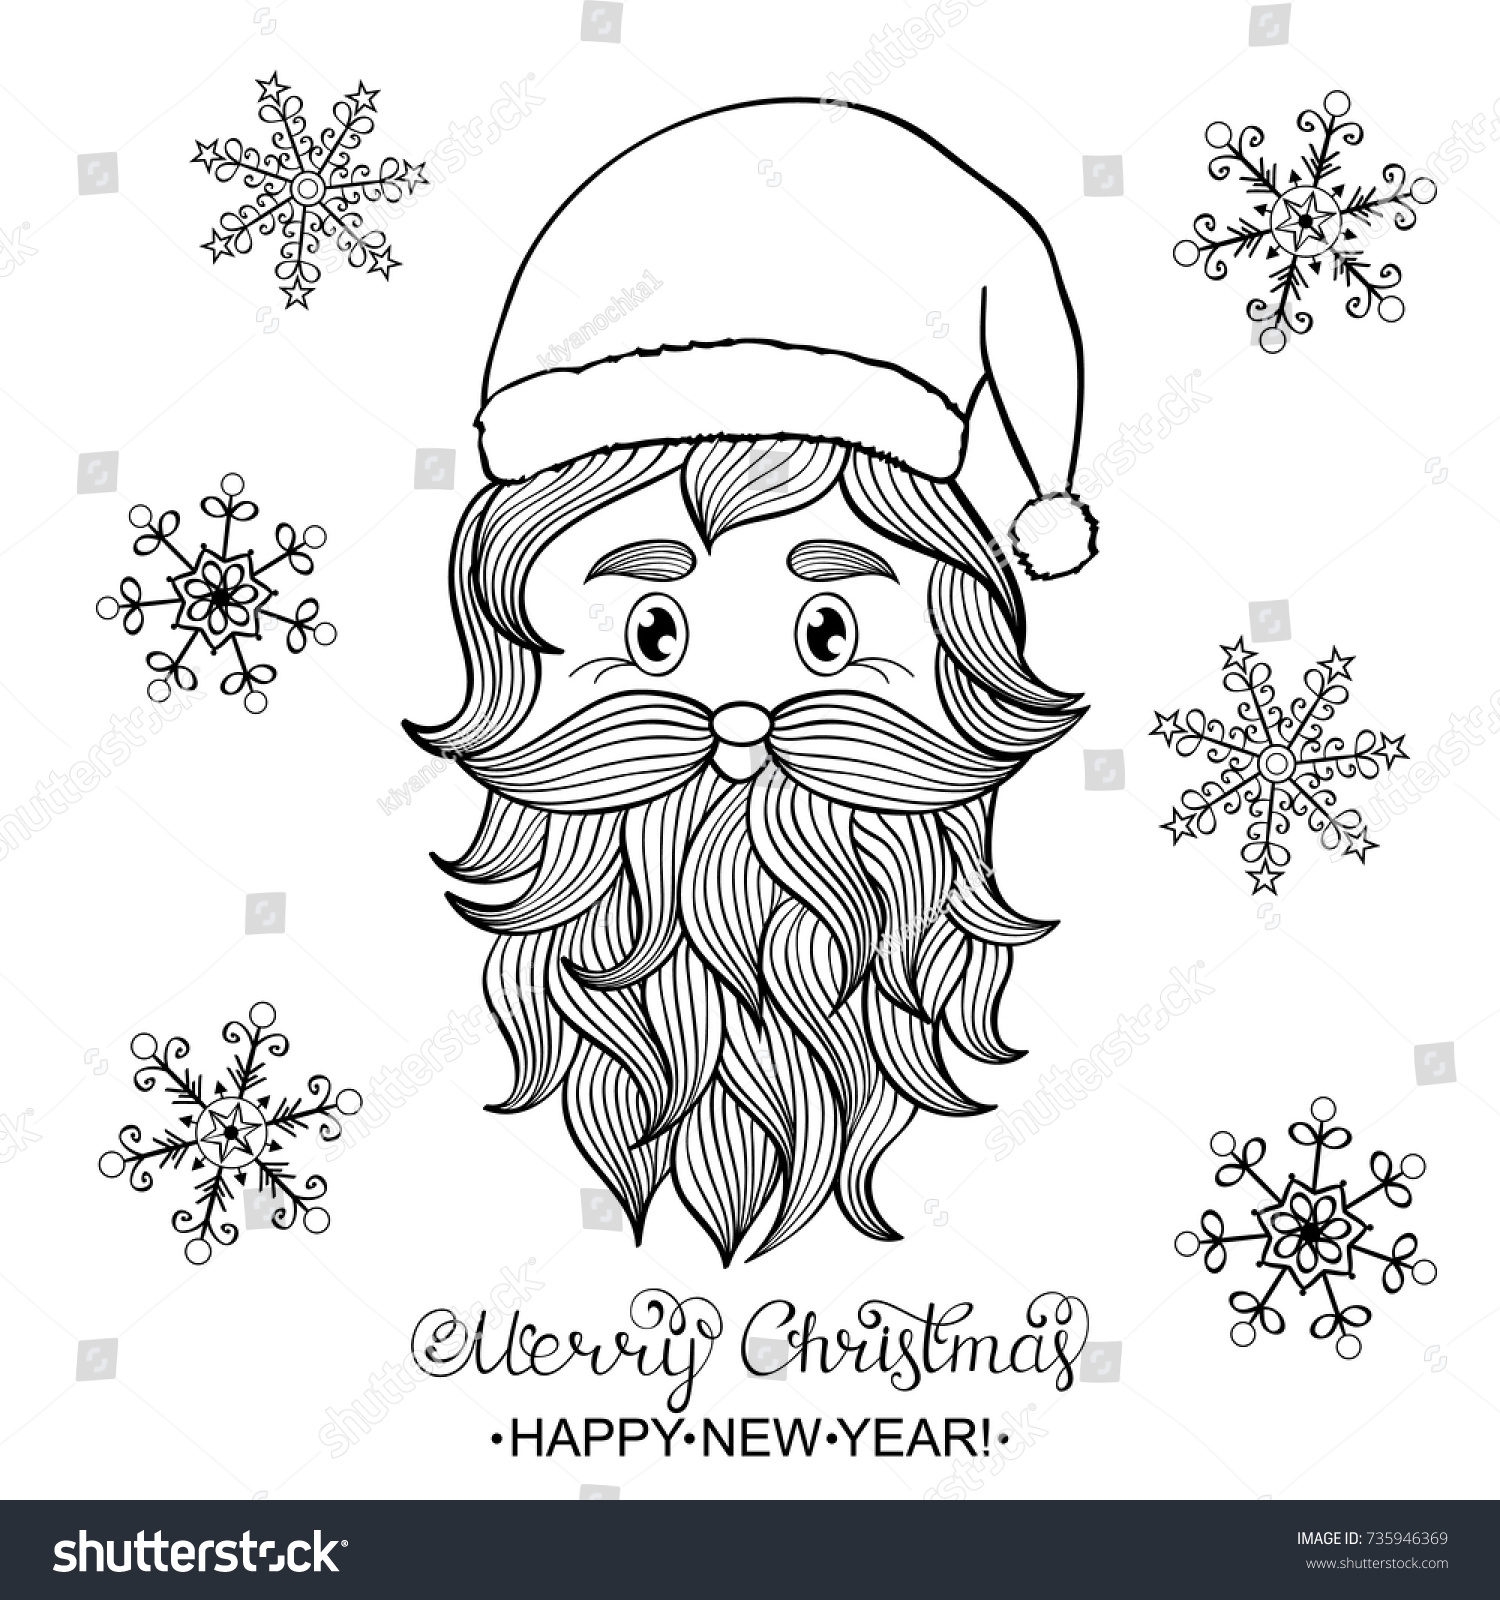 hand drawn head of santa claus on white backgroundcoloring page for children and adult